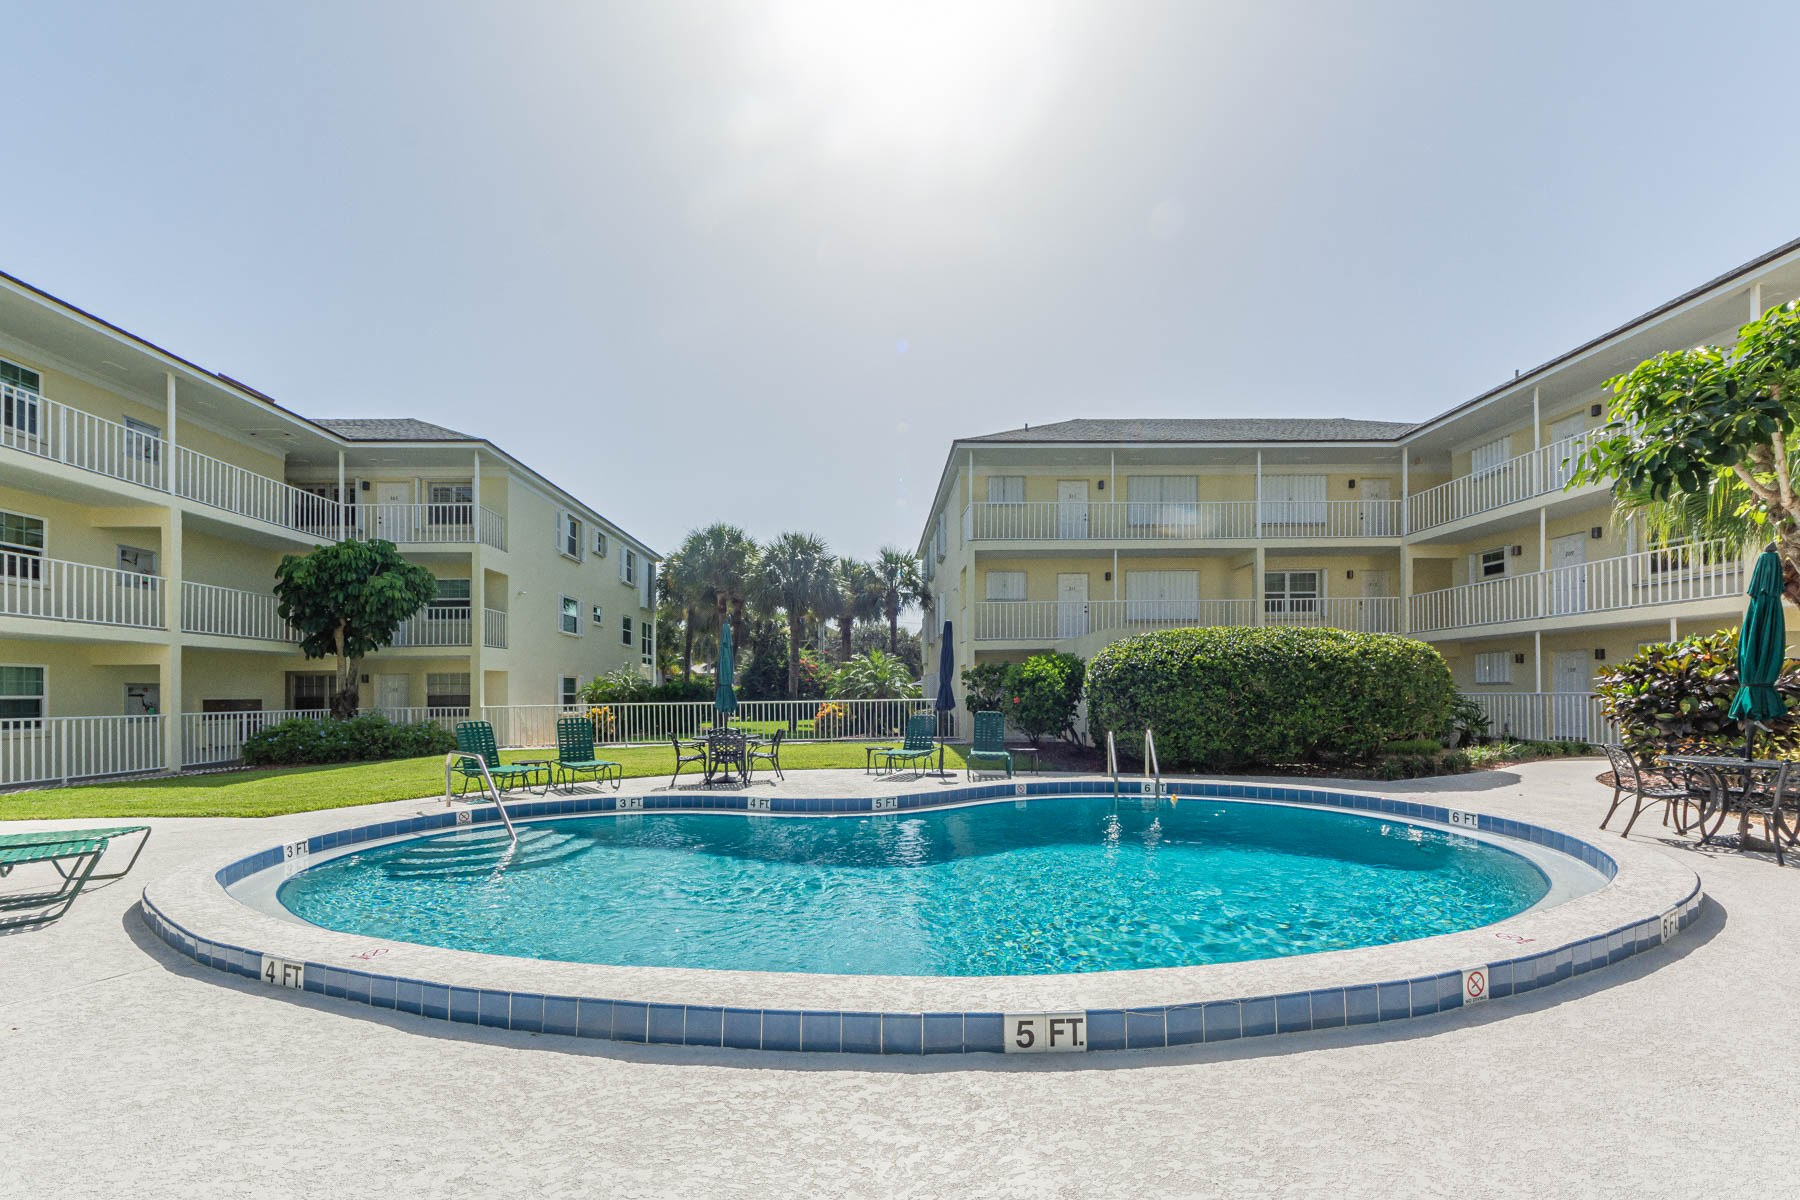 Property for Sale at 1441 Ocean Drive, #303, Vero Beach, FL 1441 Ocean Drive, 303 Vero Beach, Florida 32963 United States